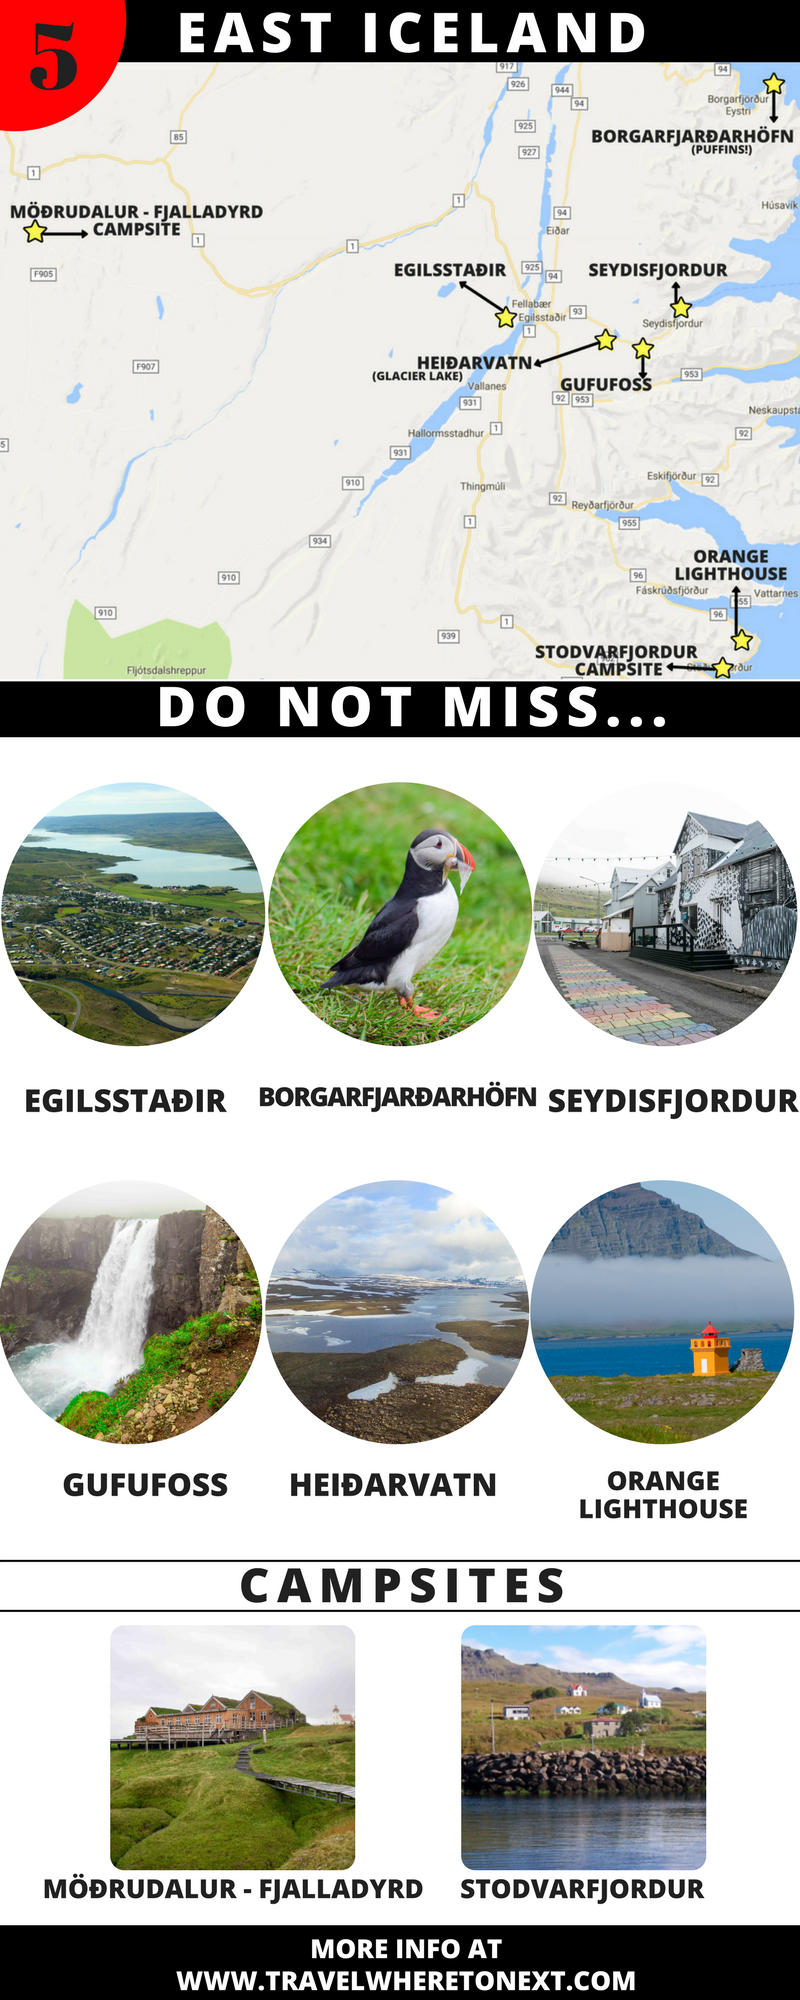 A map to help you plan a trip to Iceland.